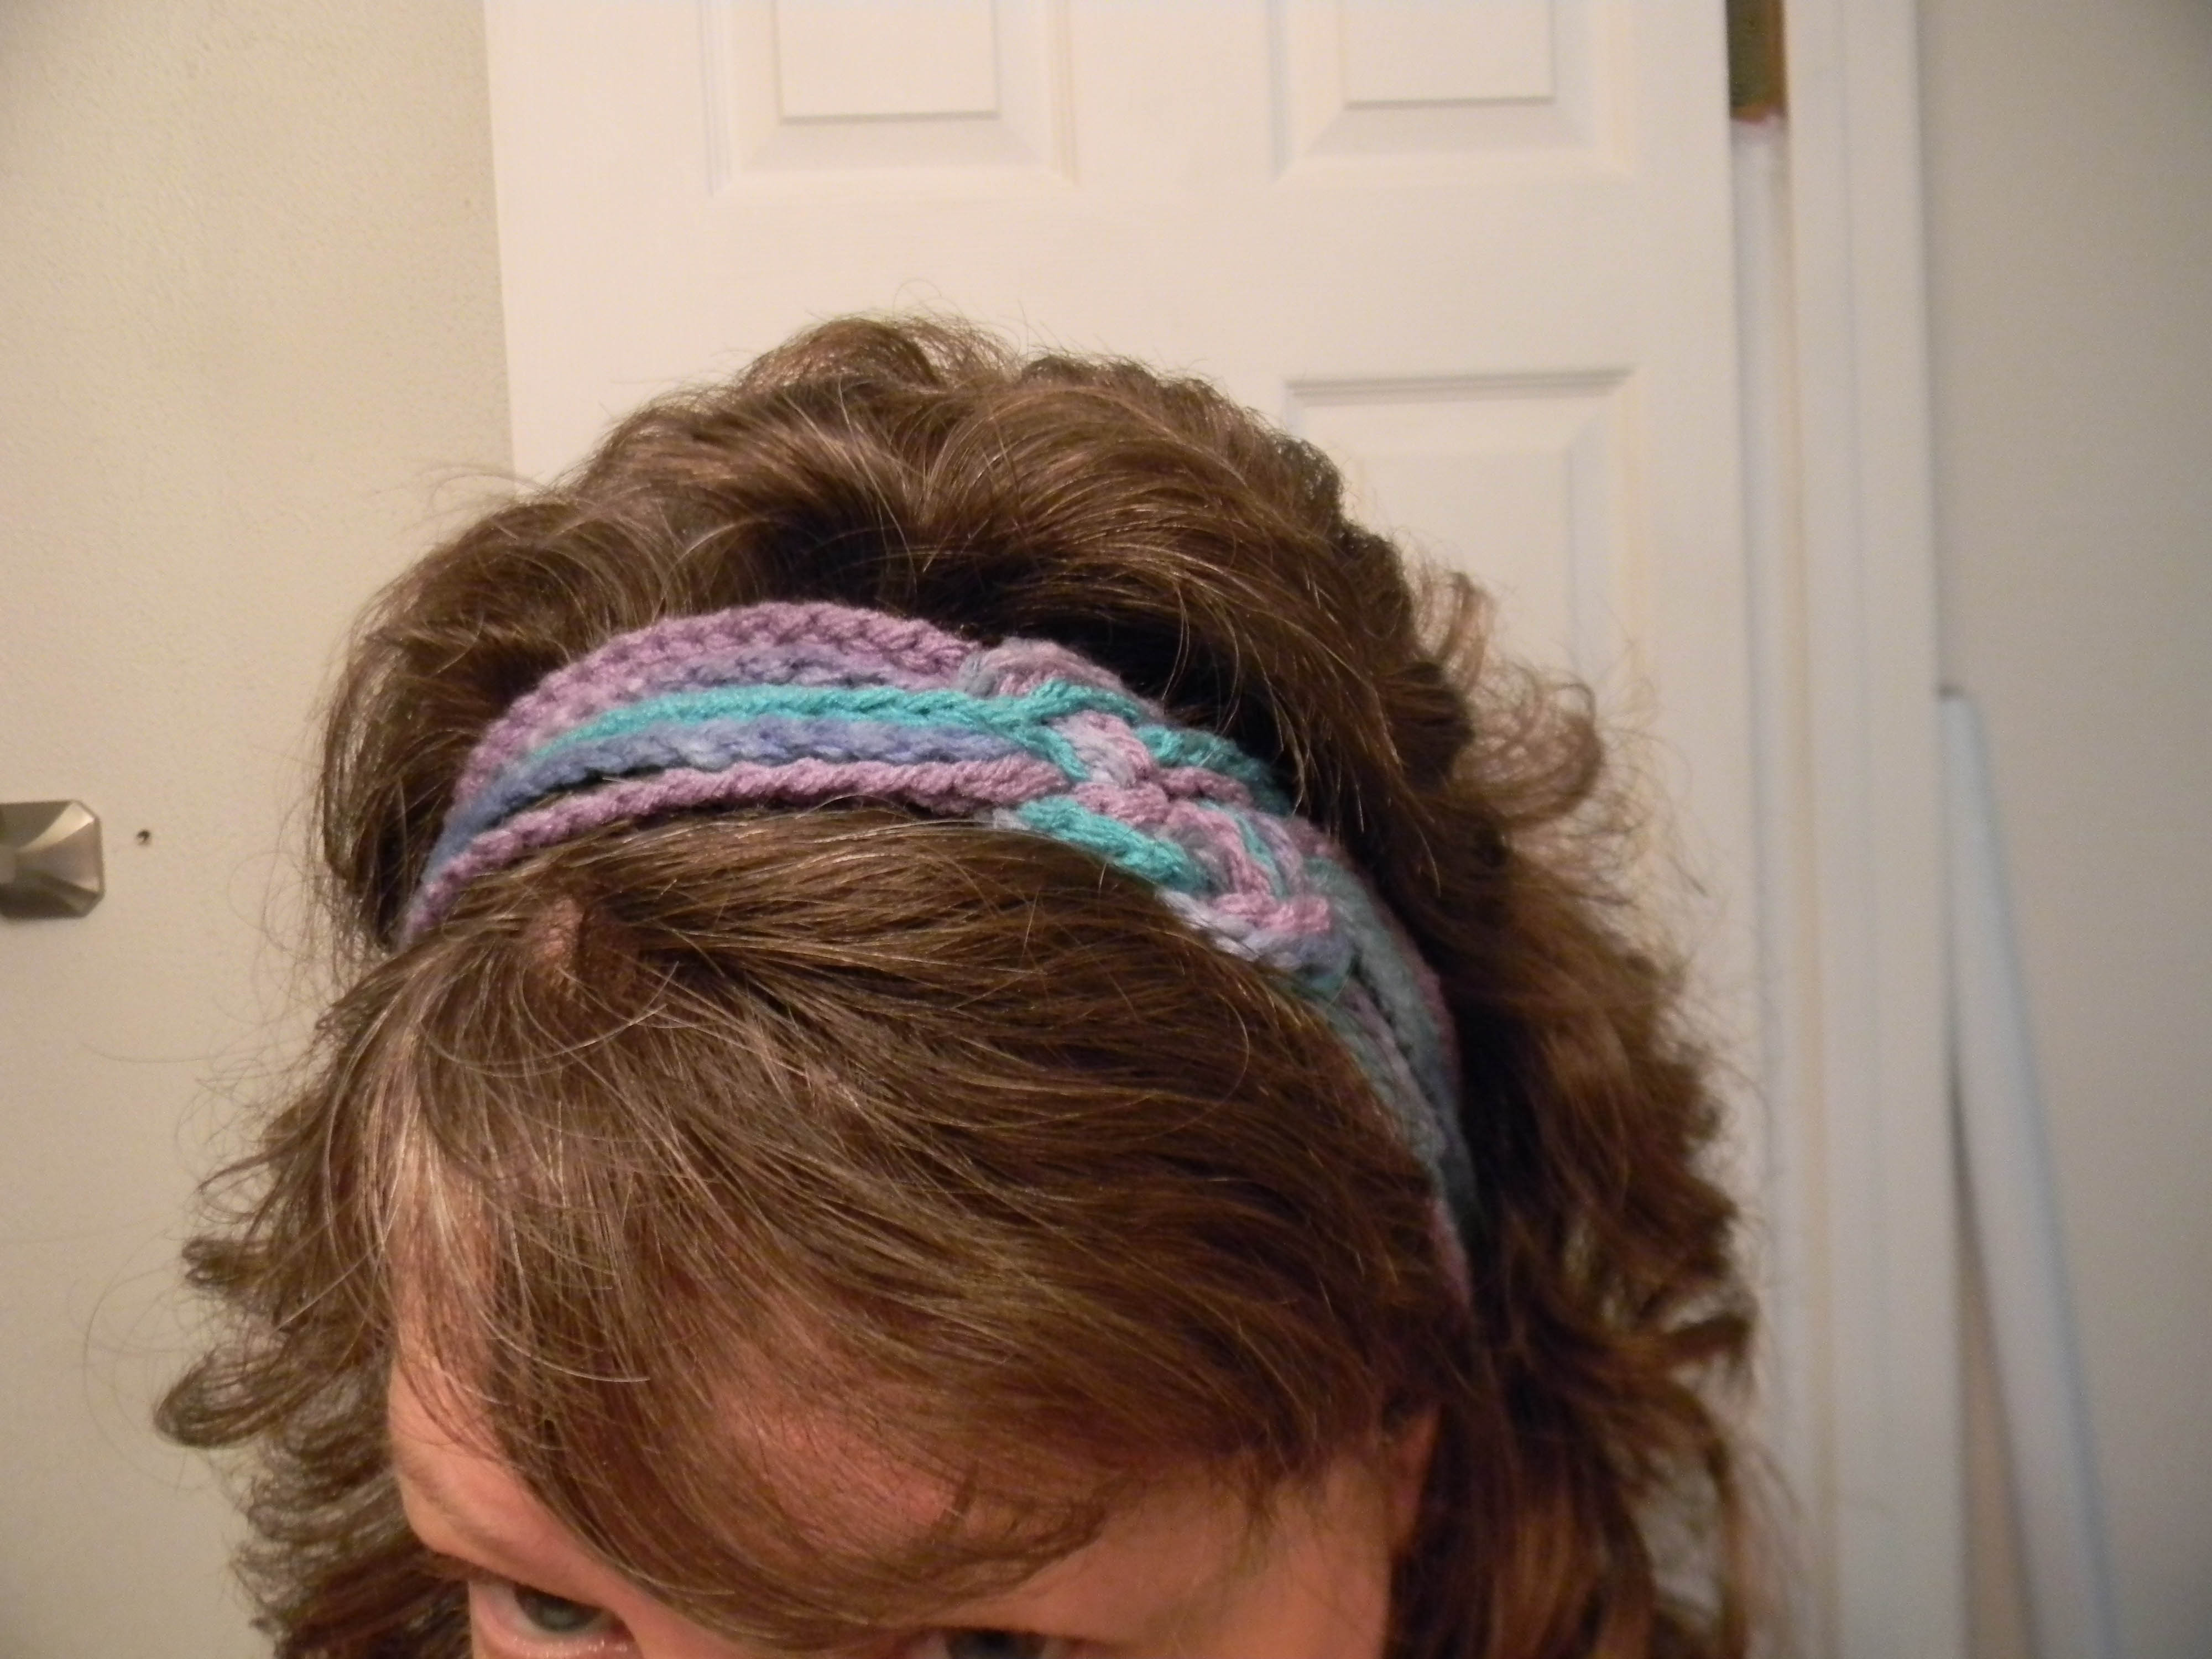 Free Crochet Pattern For Knotted Headband : Celtic Knot Headband ? Crochet Chain Stitch lifewithkeo